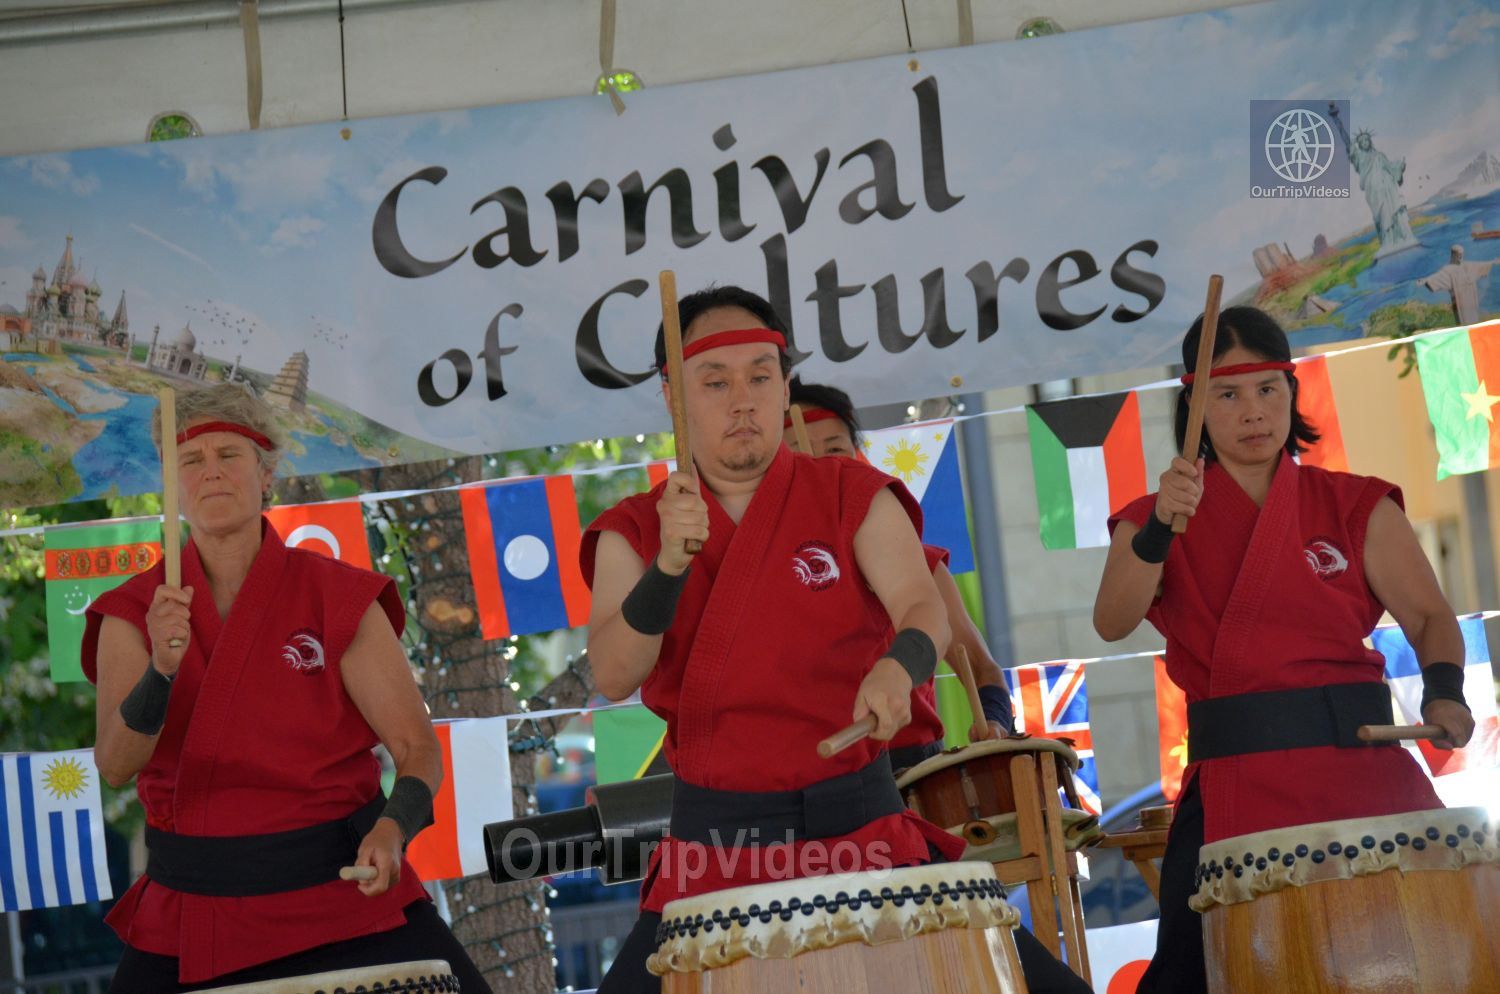 Carnival of Cultures, Cupertino, CA, USA - Picture 1 of 25